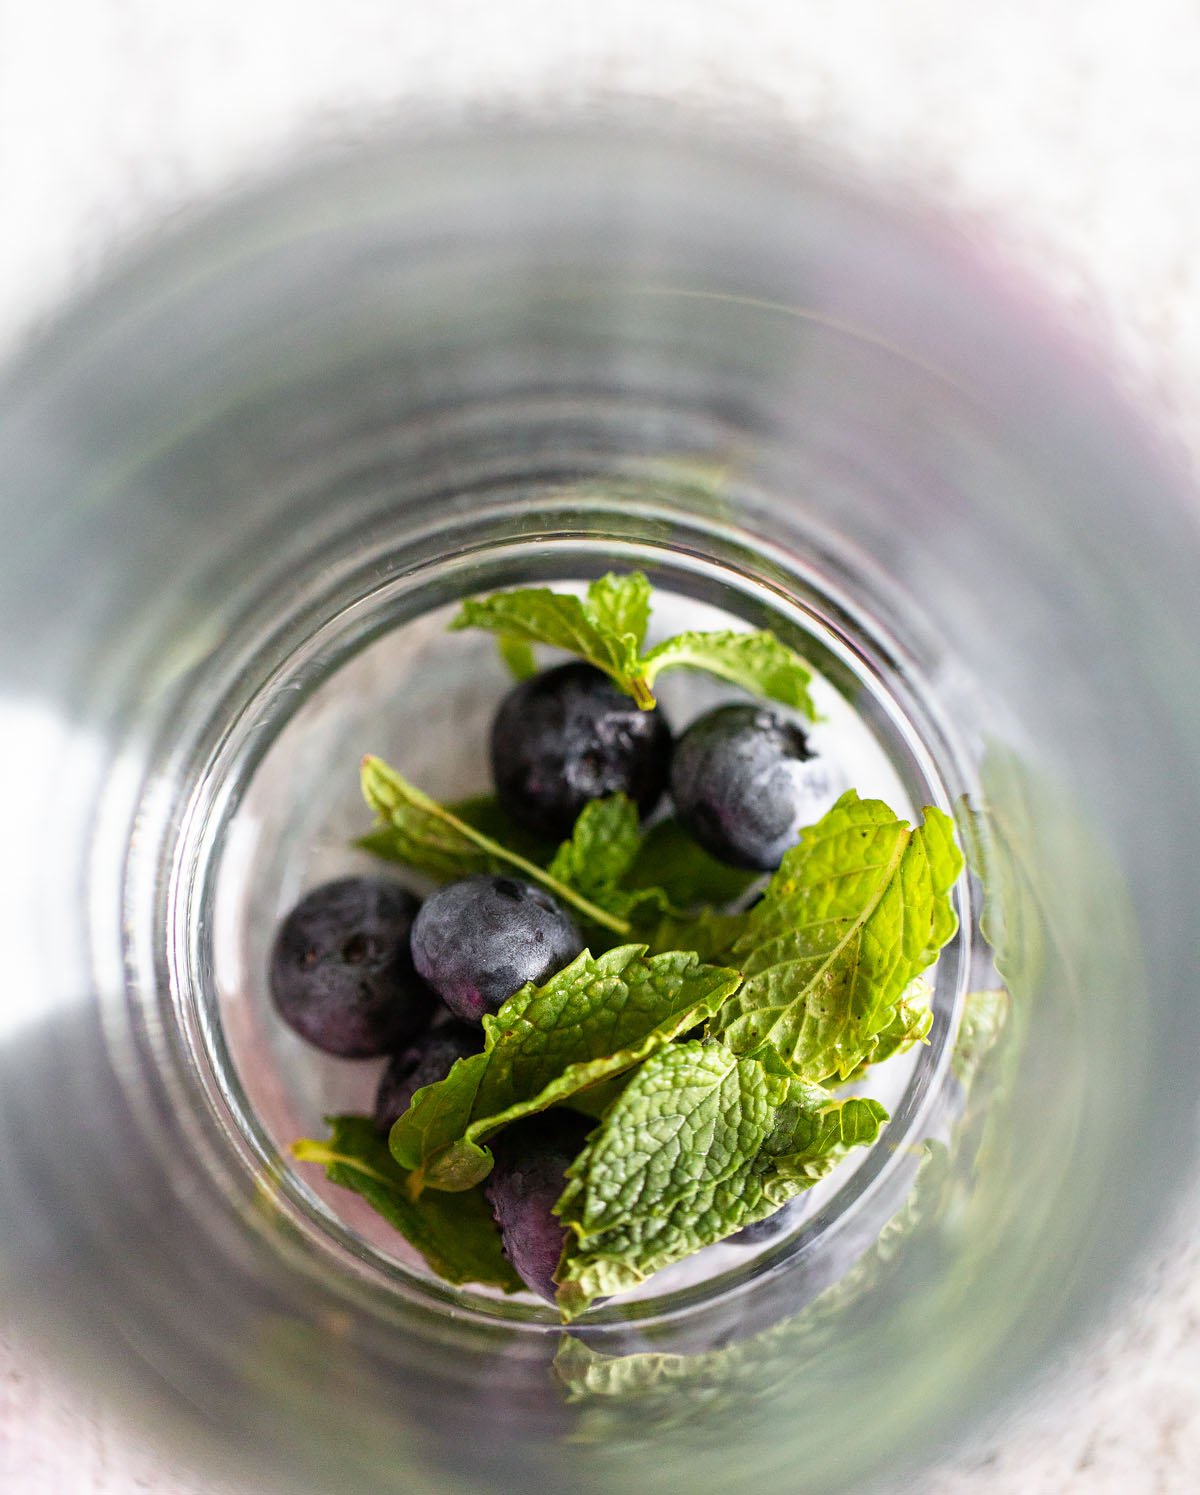 blueberries and mint in a glass